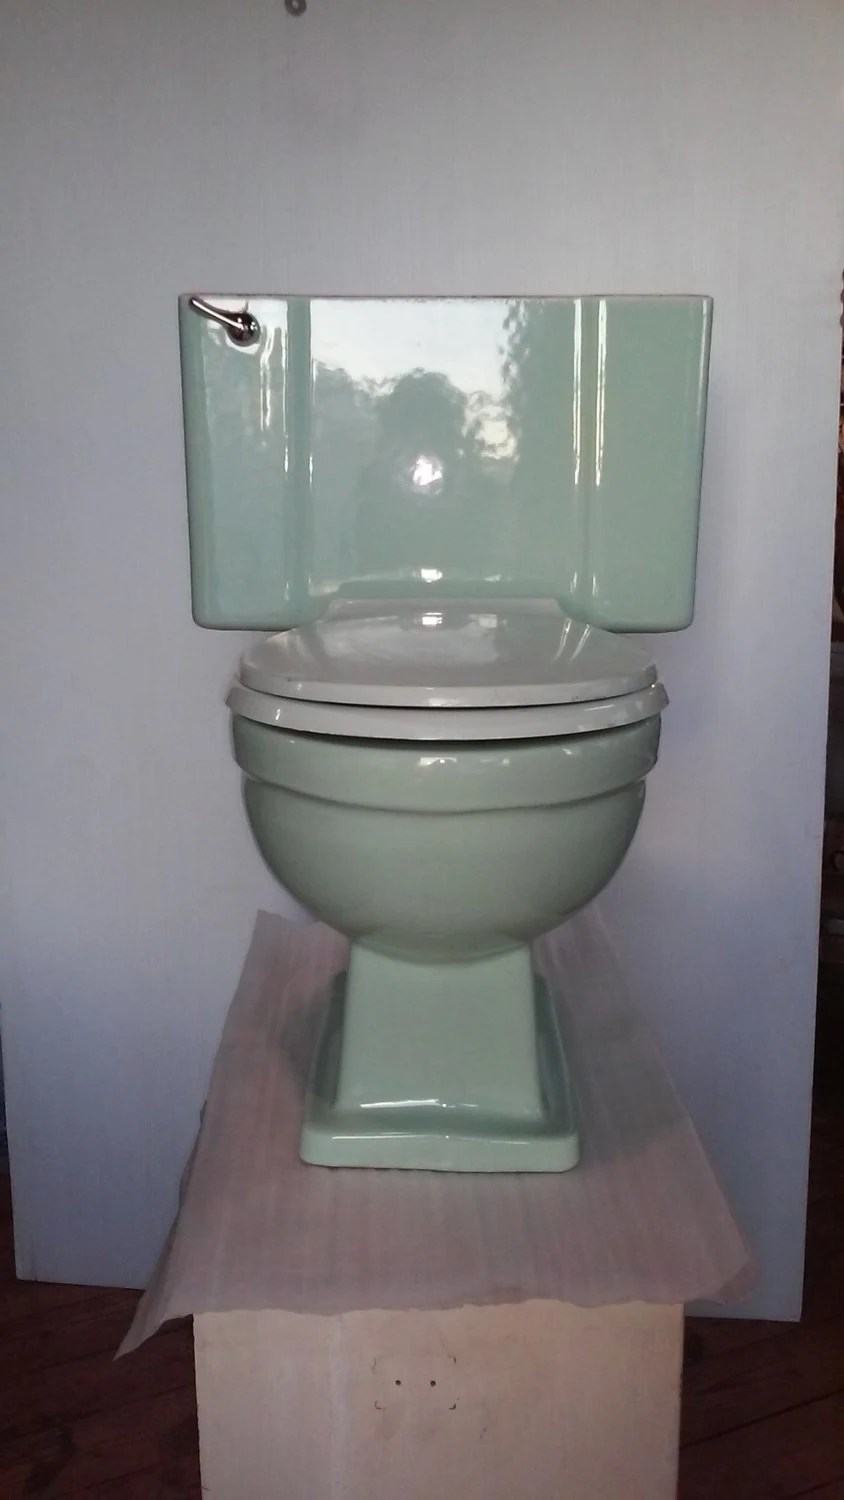 Kommode Mint Vintage Mid Century Toilet Mint Green Commode Bathroom Remodel